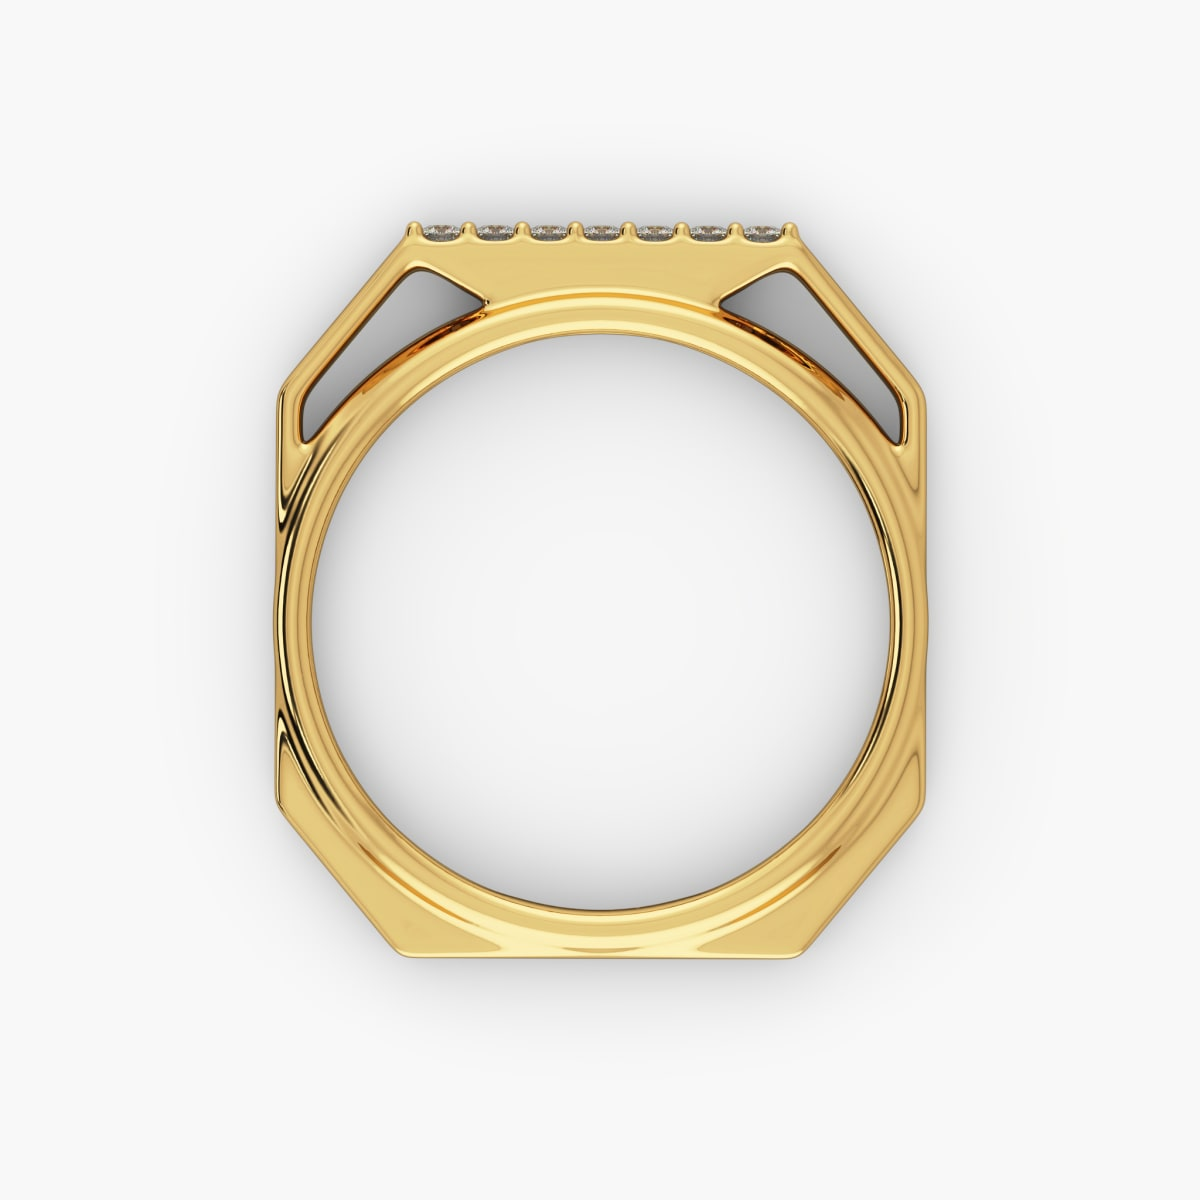 The Eloria Ring For Her